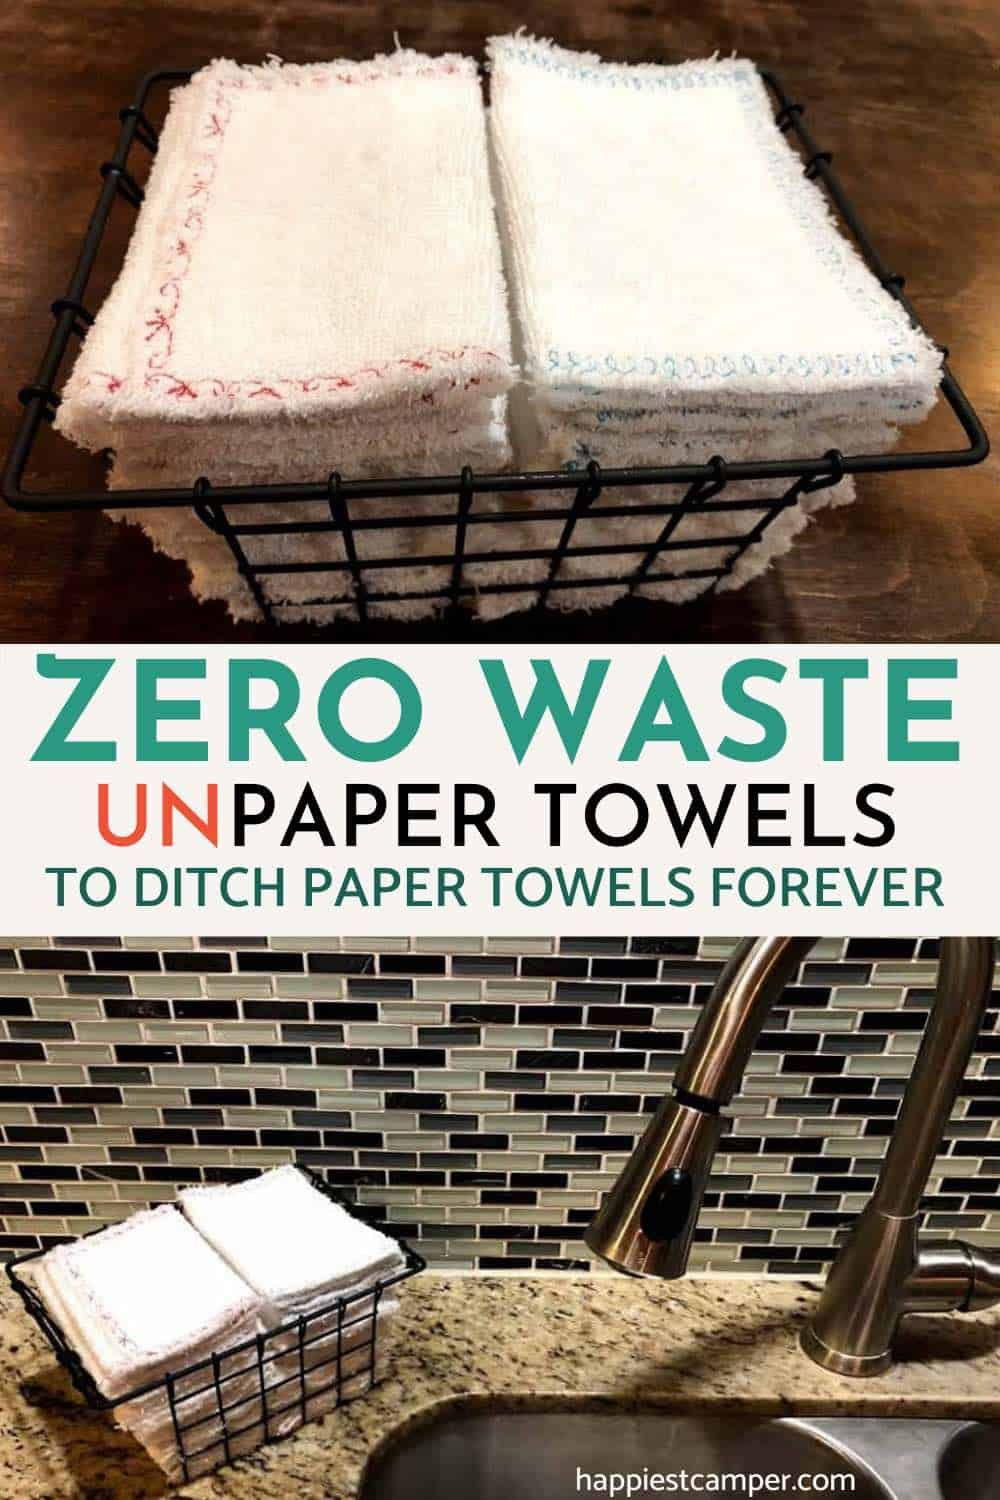 Are you after a more sustainable option to the regular paper towels? This tutorial shows you how to sew zero waste unpaper towels to ditch paper towels forever! Click here to follow this easy sew tutorial. #ZeroWastePaperTowels #EasySewDiyProjects #SustainablePaperTowels